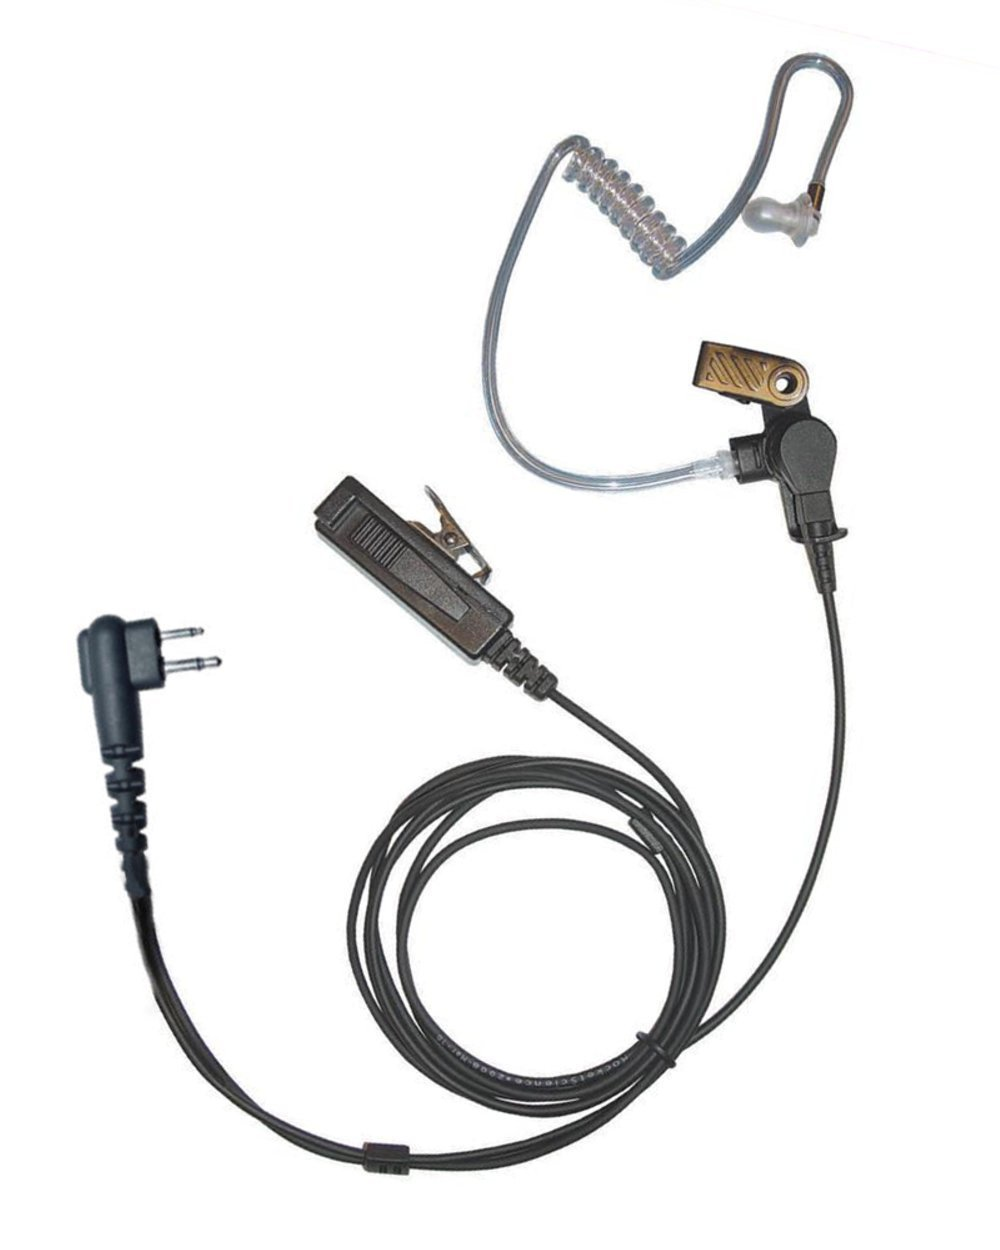 Antennas Director 2-Wire Earpiece for Kenwood Radios Director-K1 Walkie Talkie/Two-Way Antennas